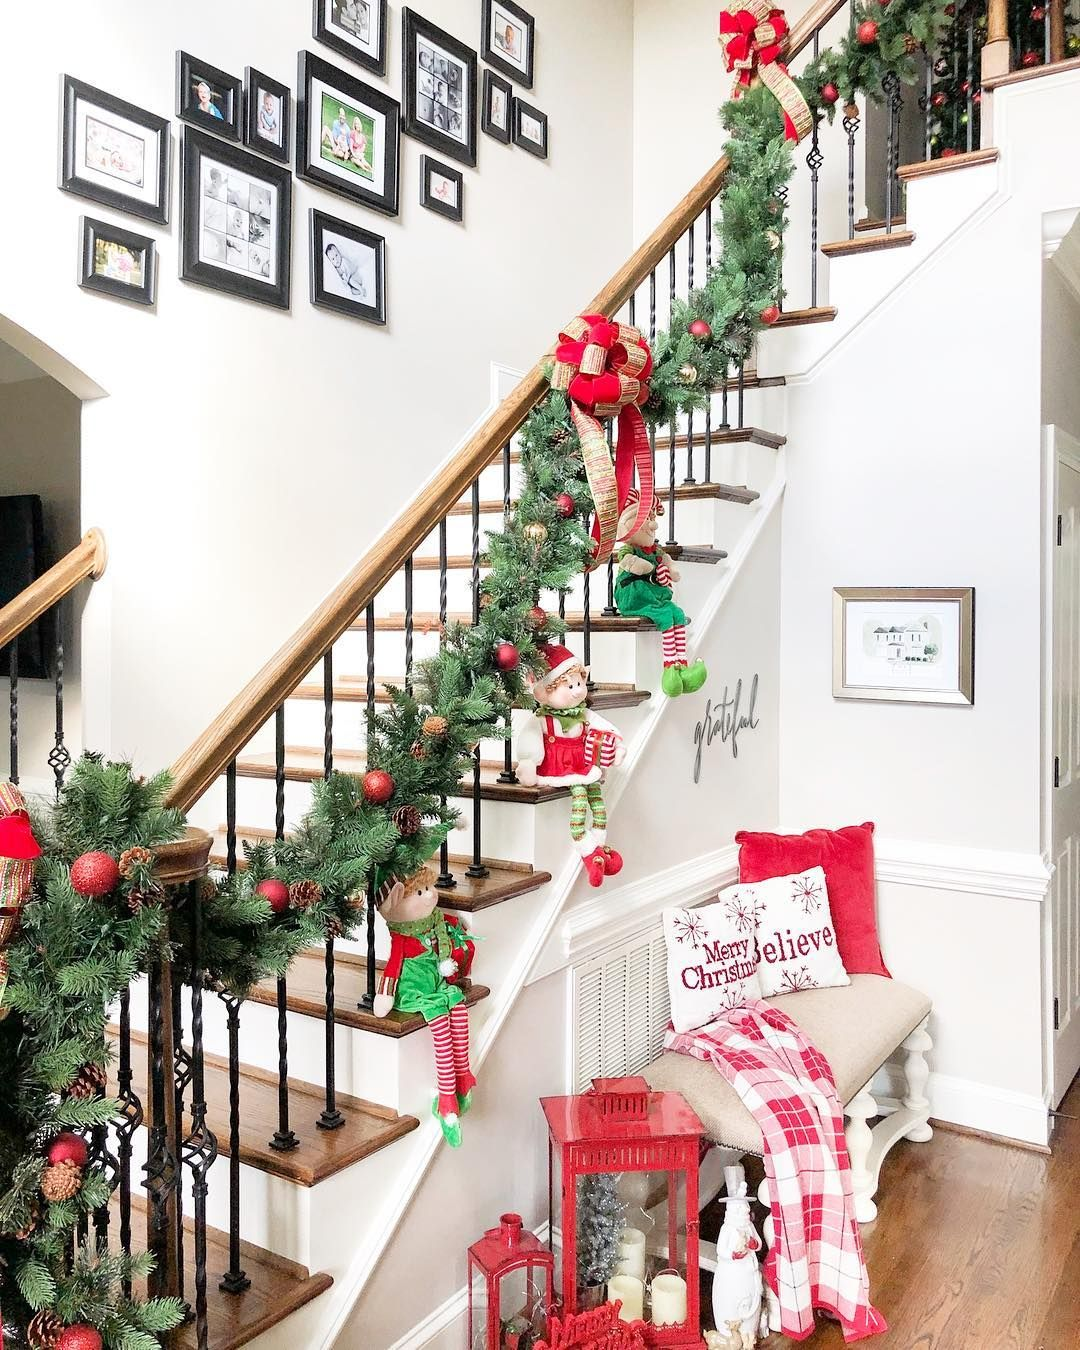 Adorable Elves on the Steps of a Christmas Entryway via @summerblaisep #ChristmasDecor #ChristmasHome